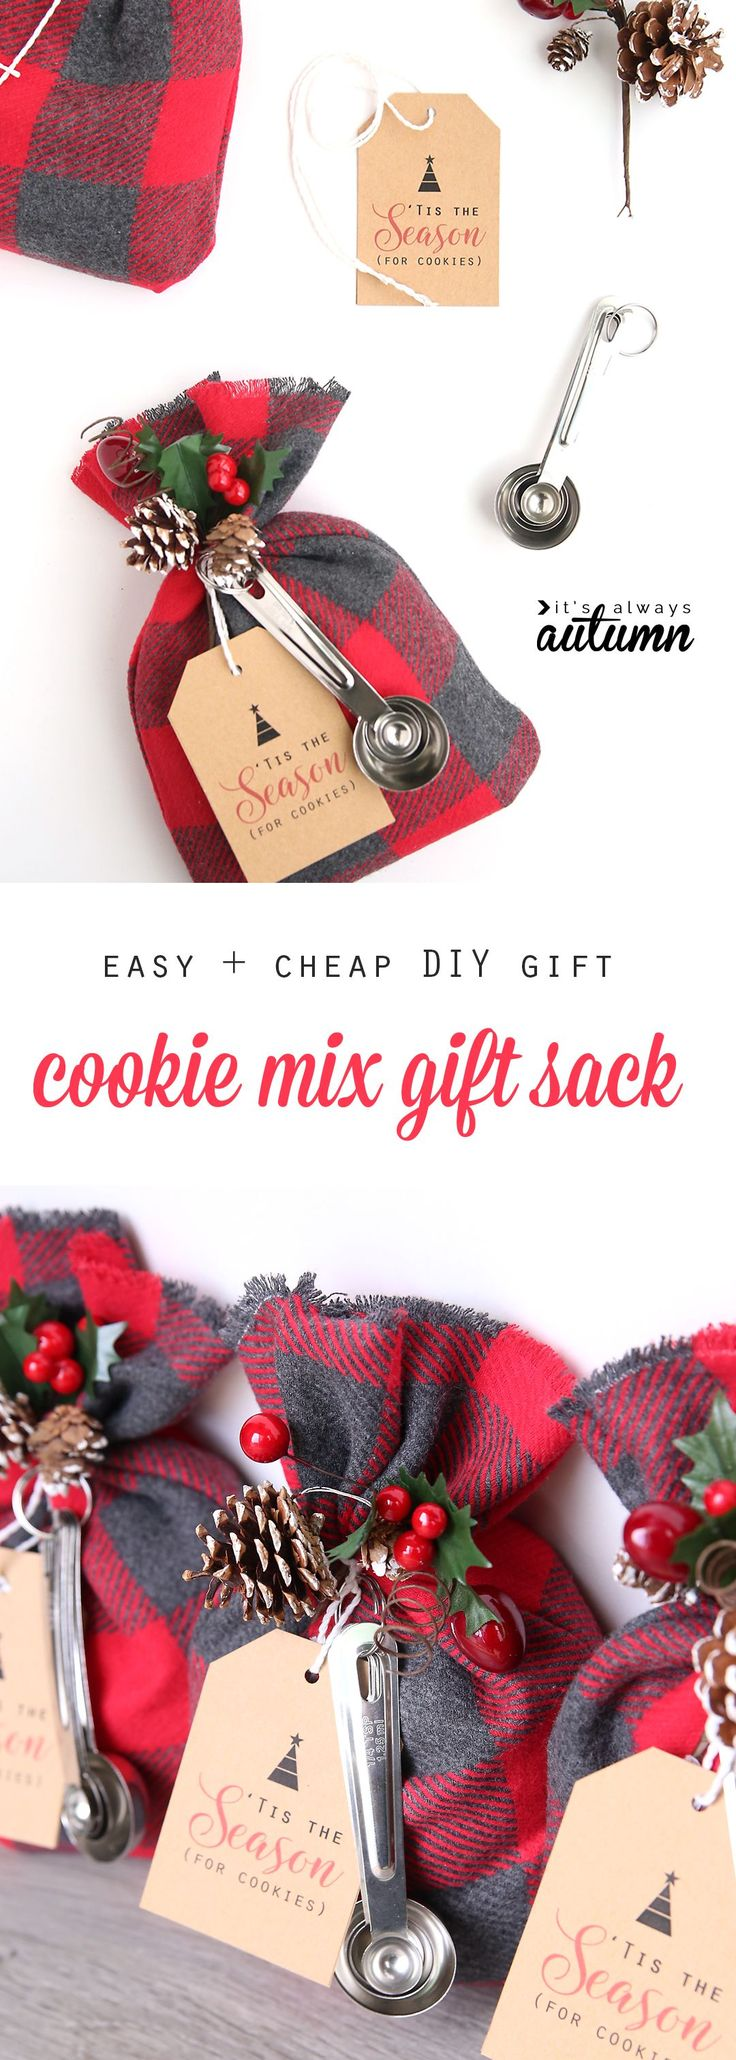 These cookie mix gift sacks make an adorable handmade Christmas gift, and they're easy and cheap to put together. DIY gift idea.